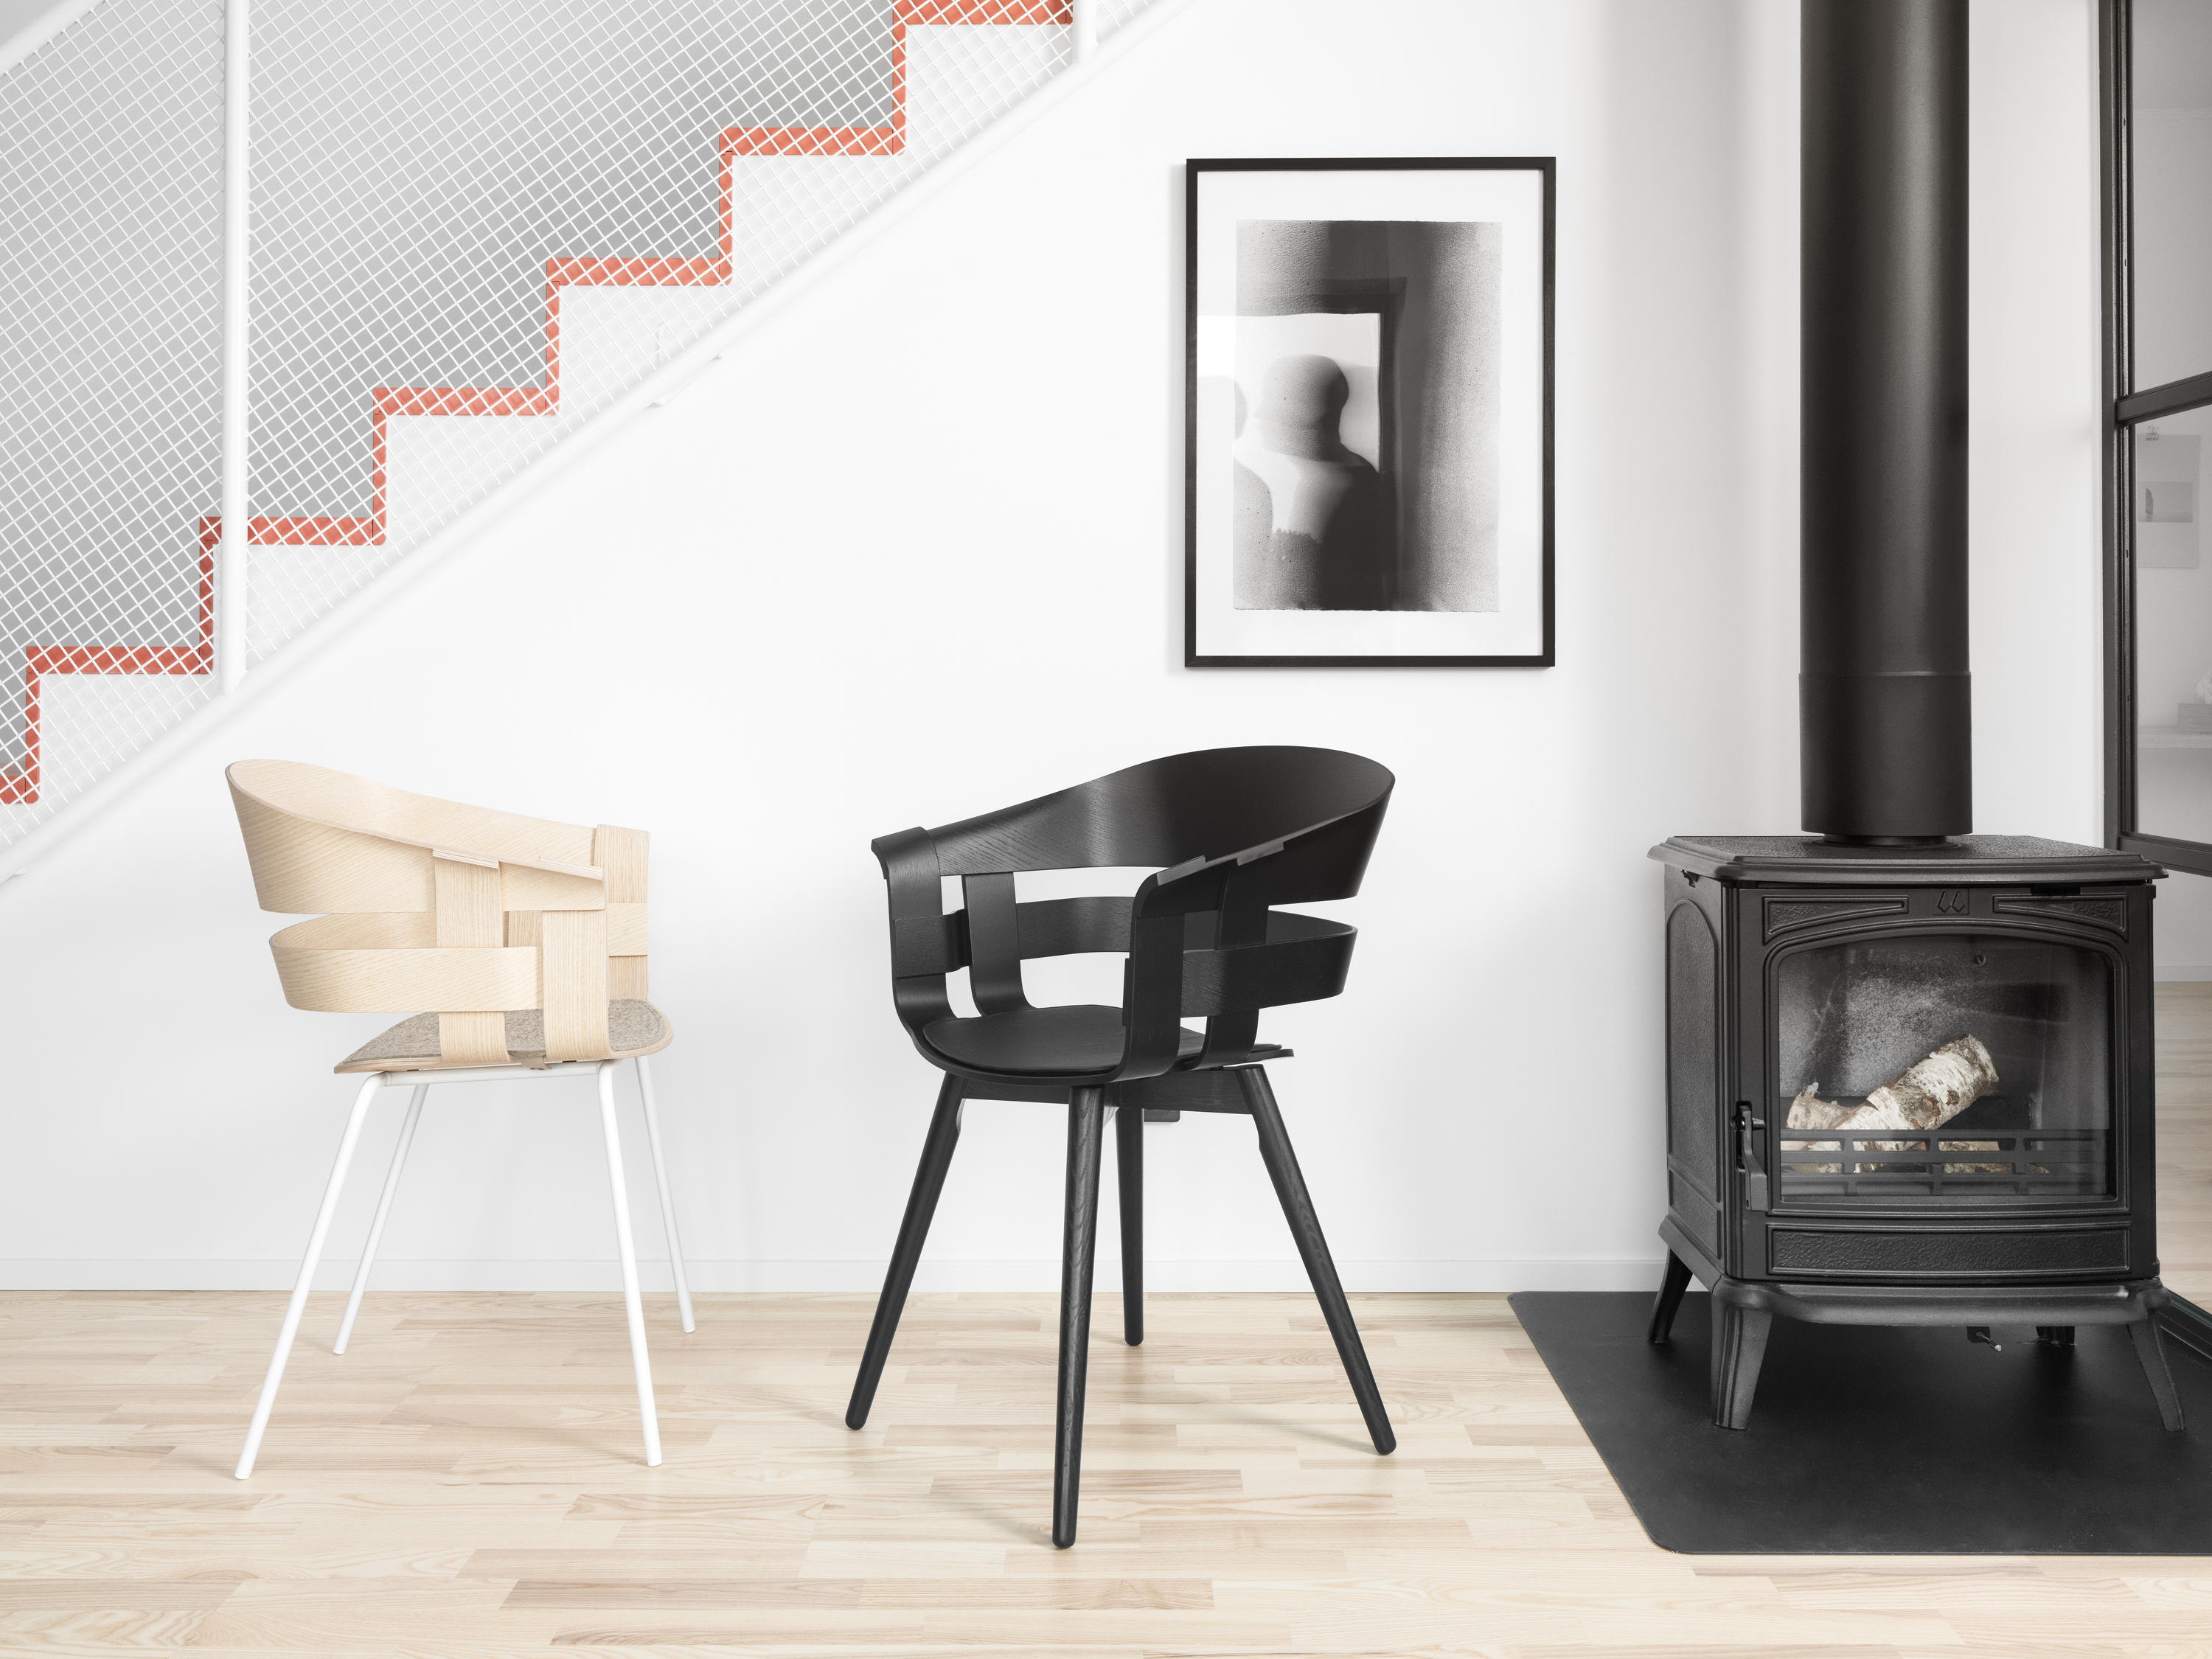 wick chair restaurant chairs from design house stockholm. Black Bedroom Furniture Sets. Home Design Ideas